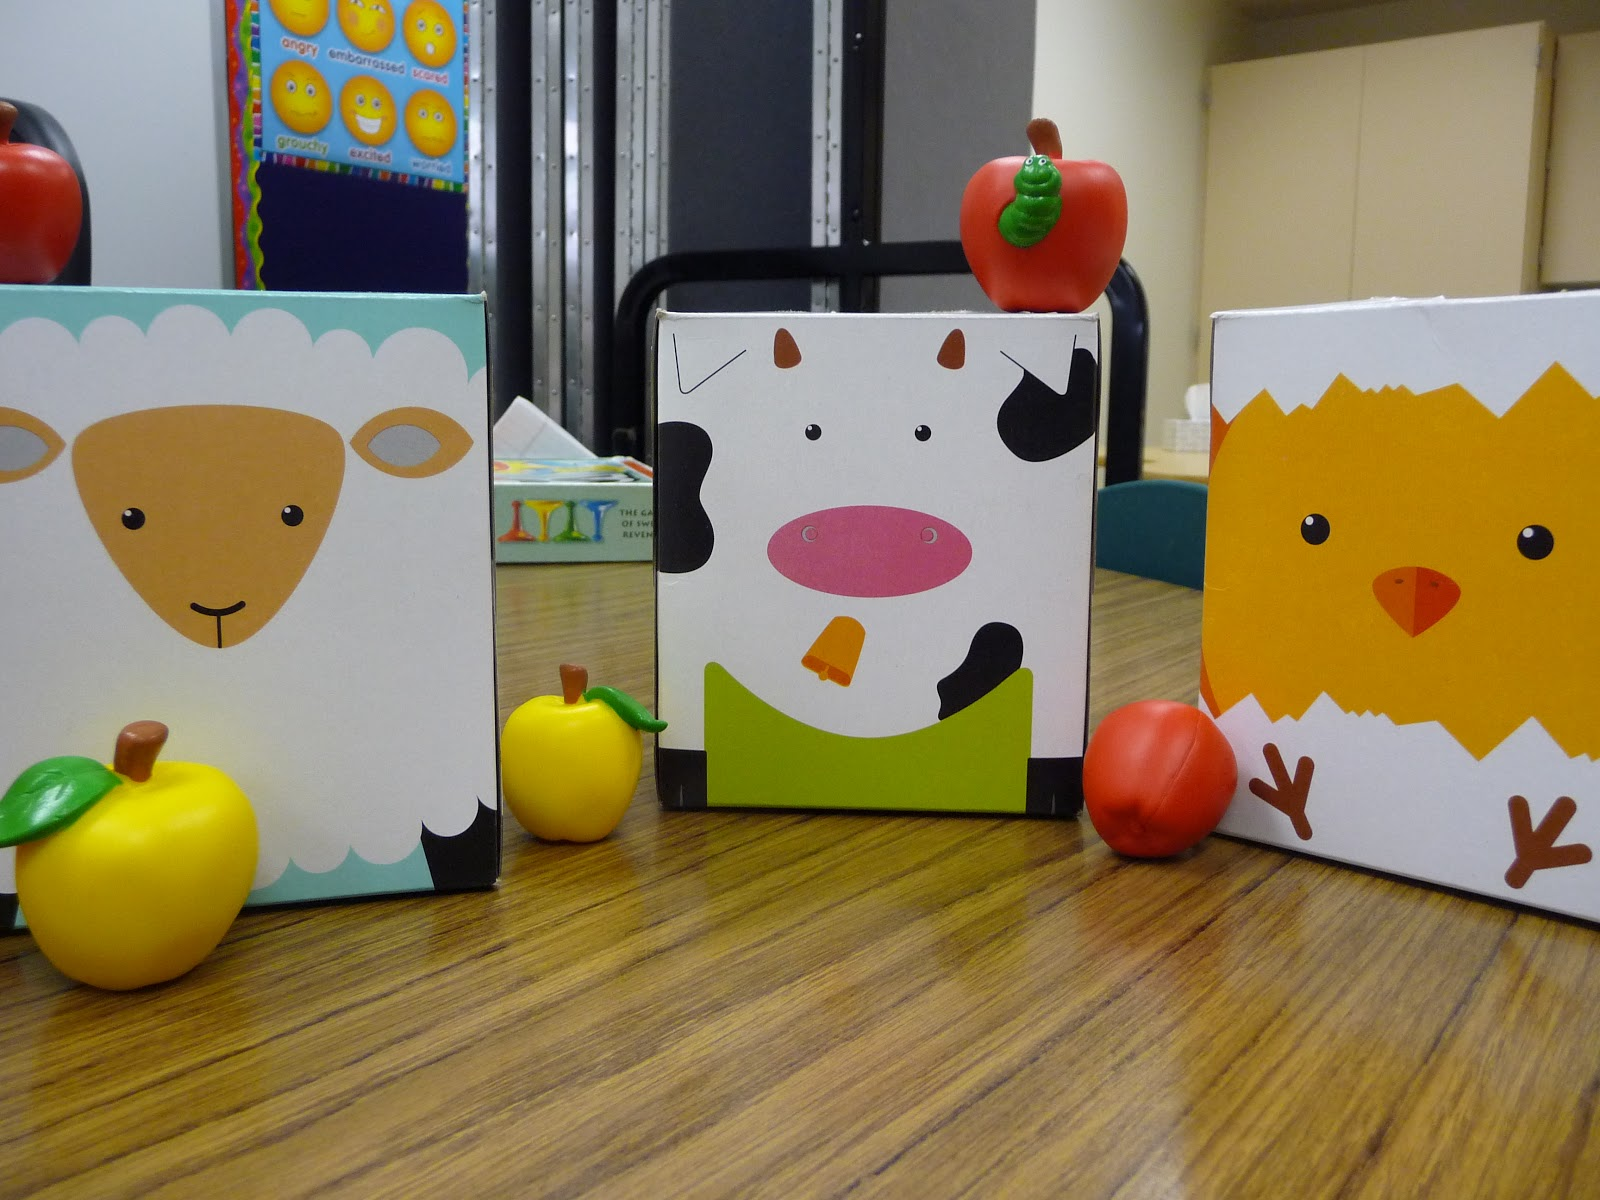 Liz S Speech Therapy Ideas Oh For The Love Of Target Brand Kleenex Boxes